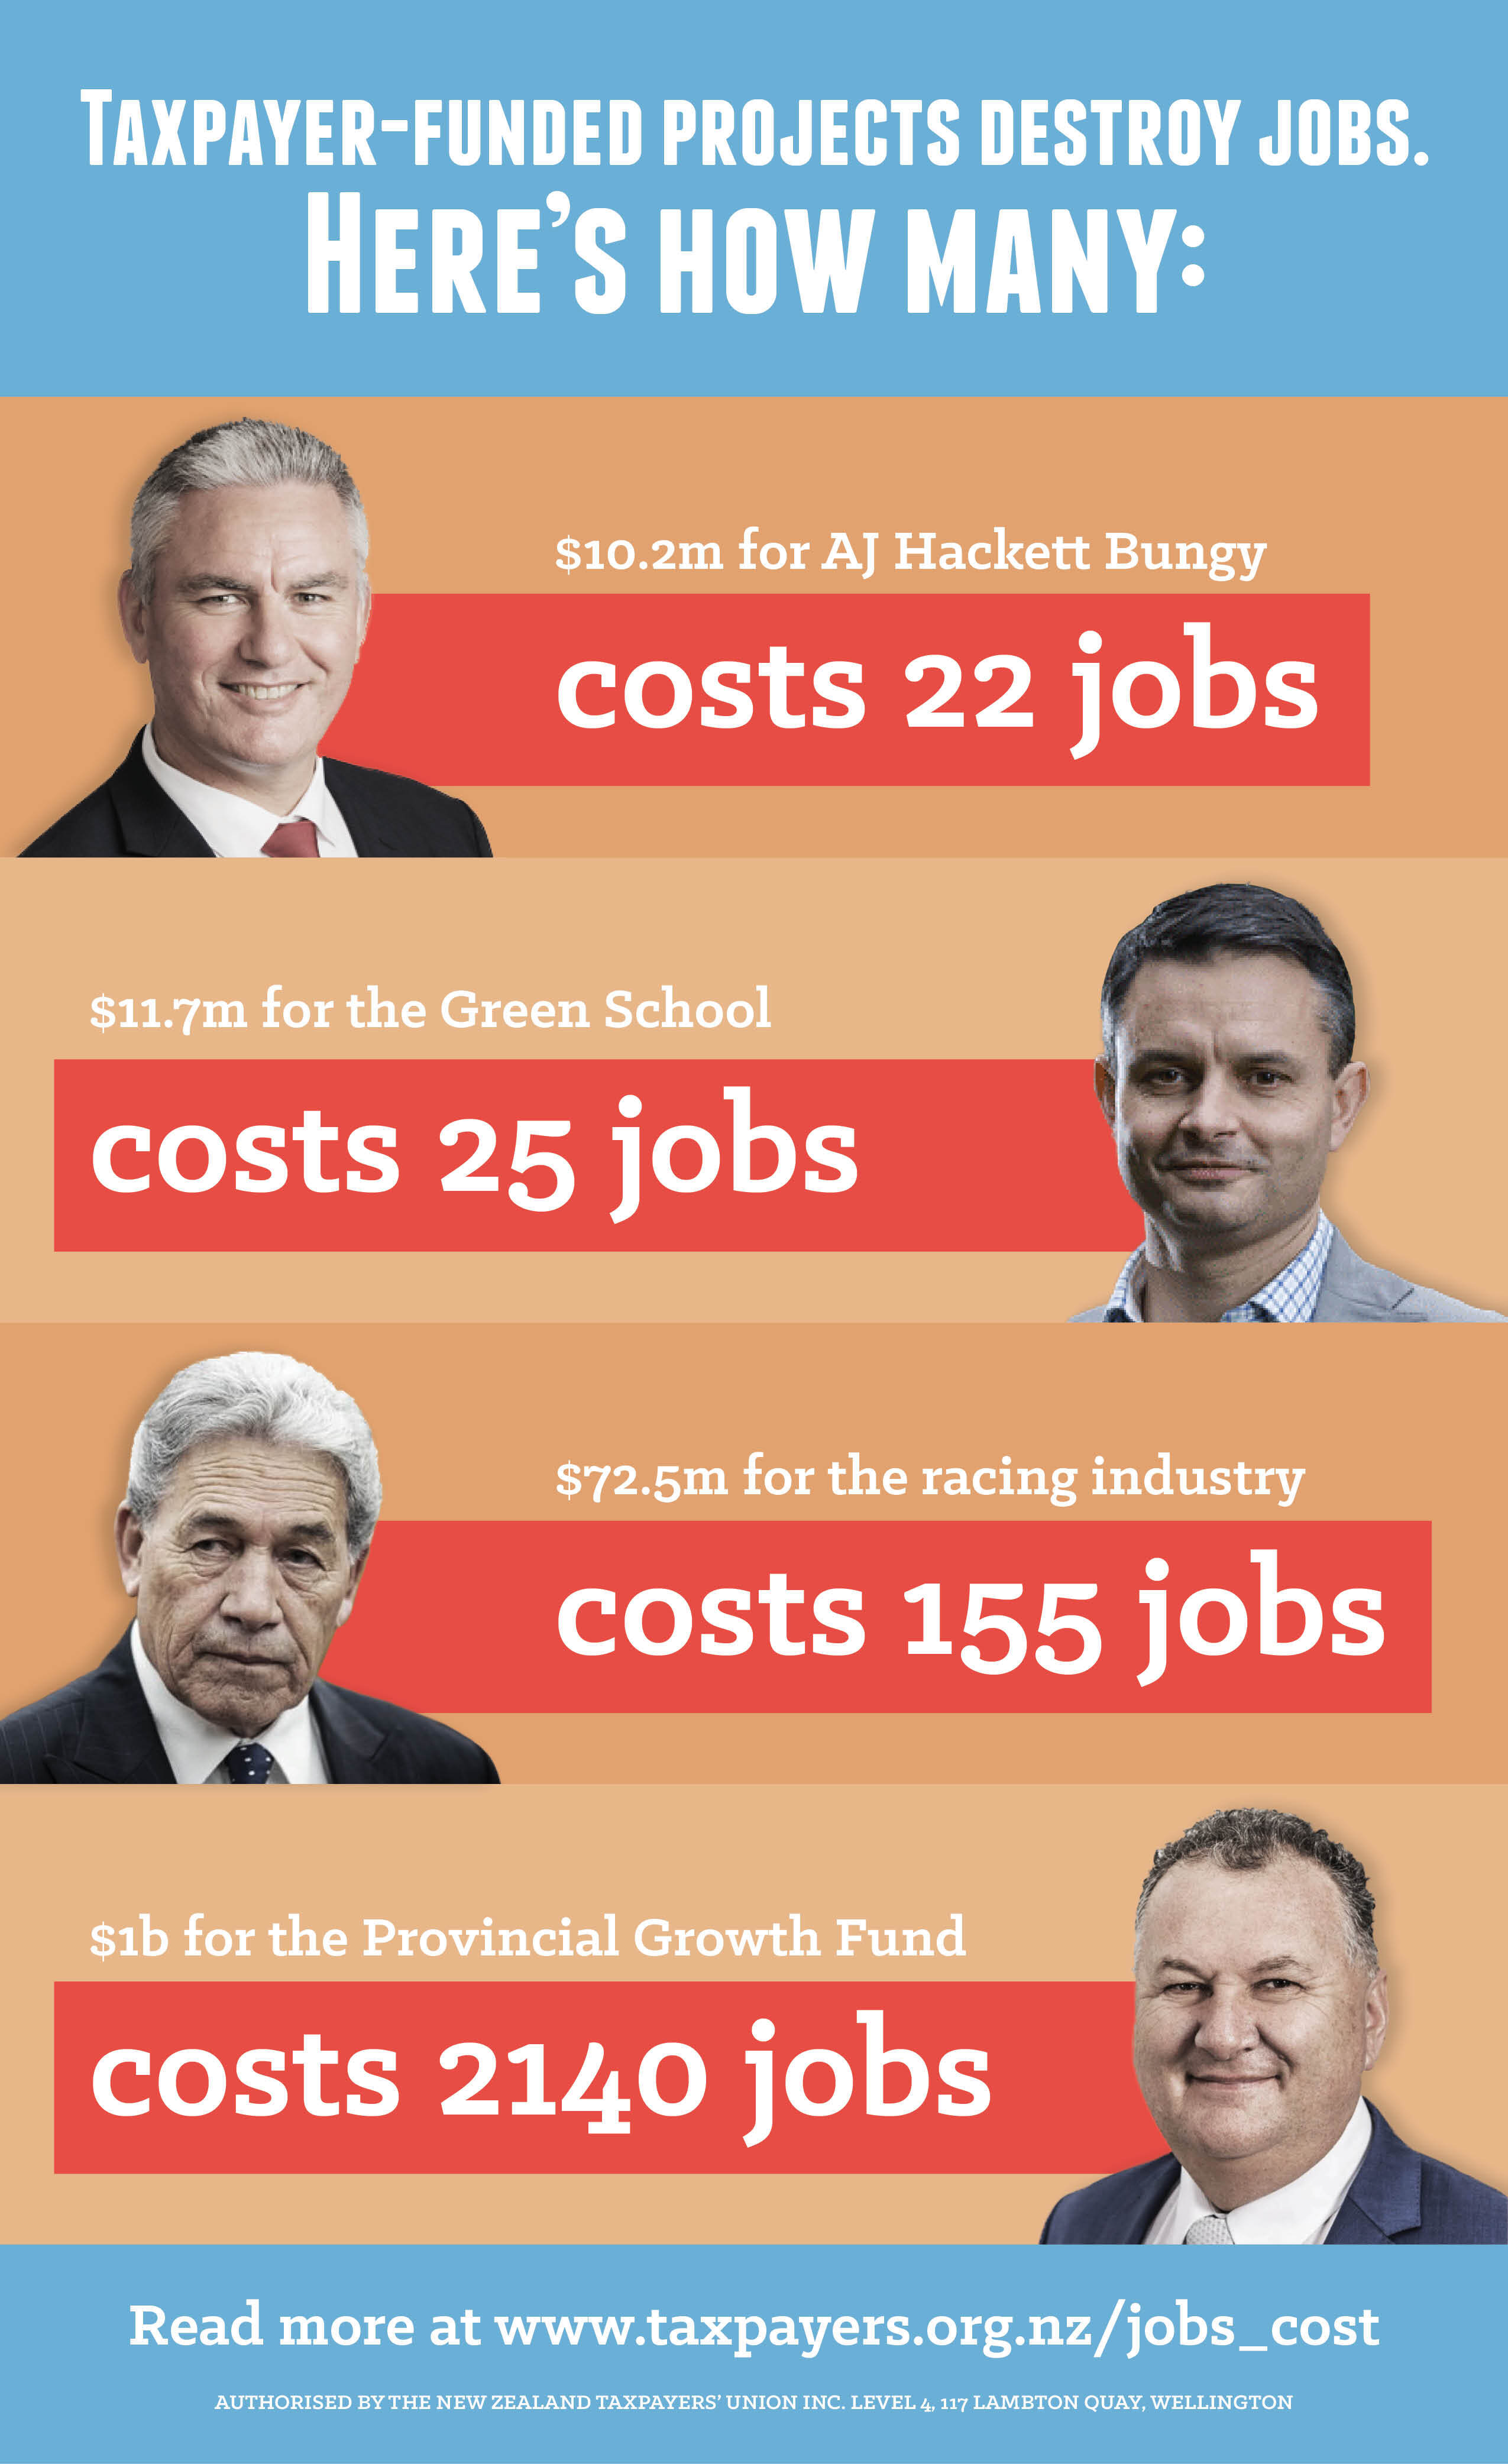 Jobs cost image